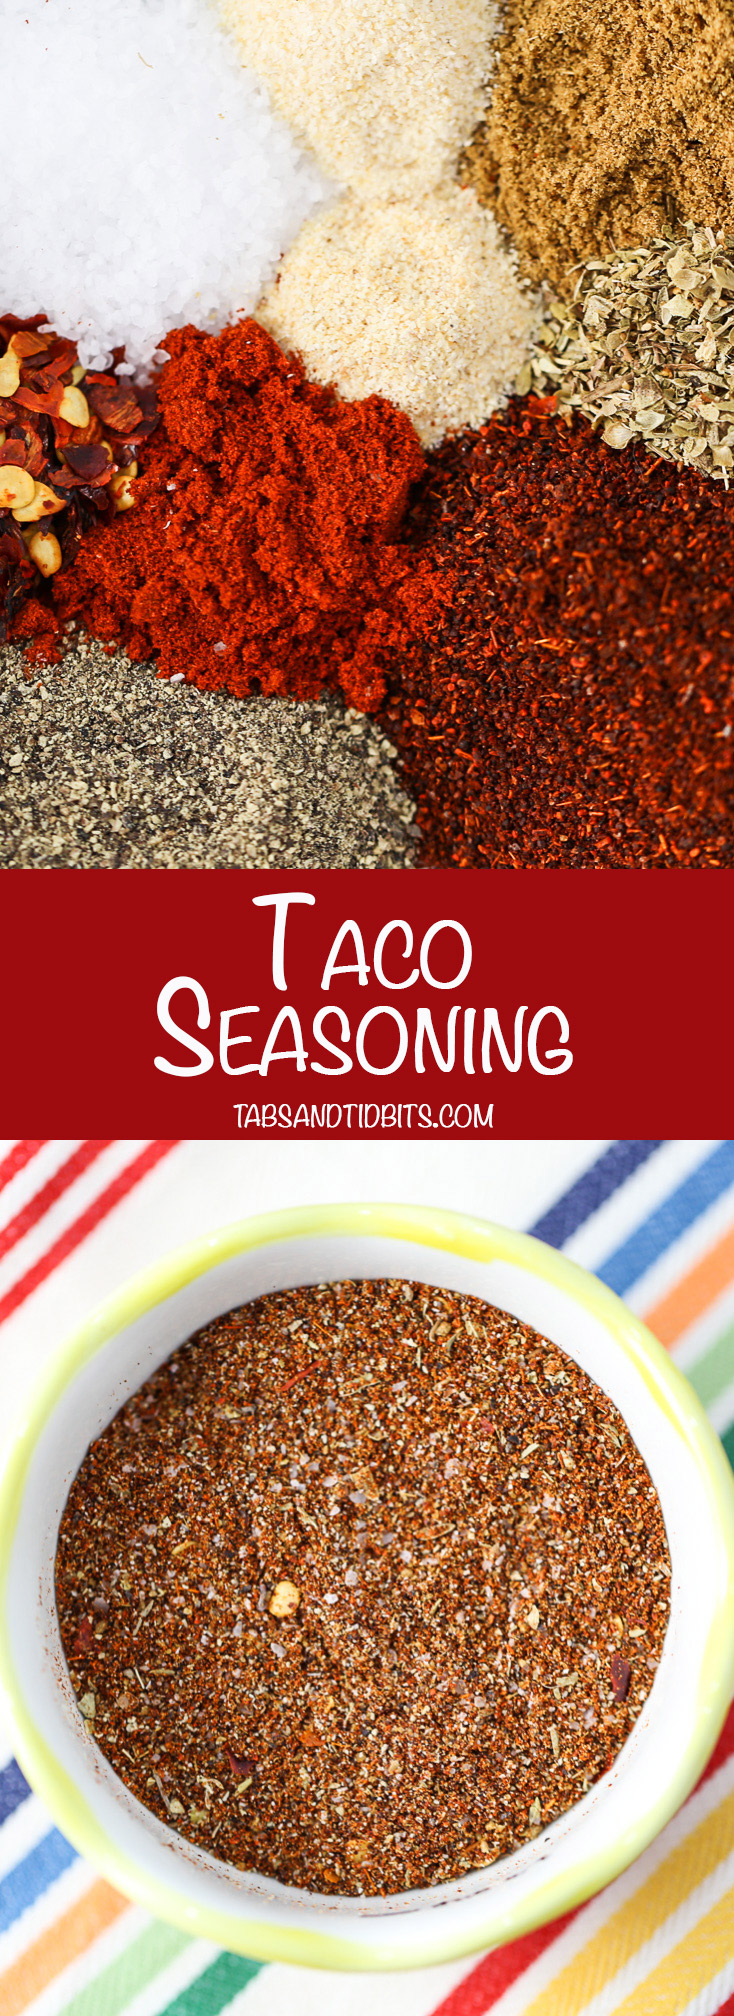 Taco Seasoning - Homemade taco seasoning that is rich and flavorful with a touch of smoky and spicy!